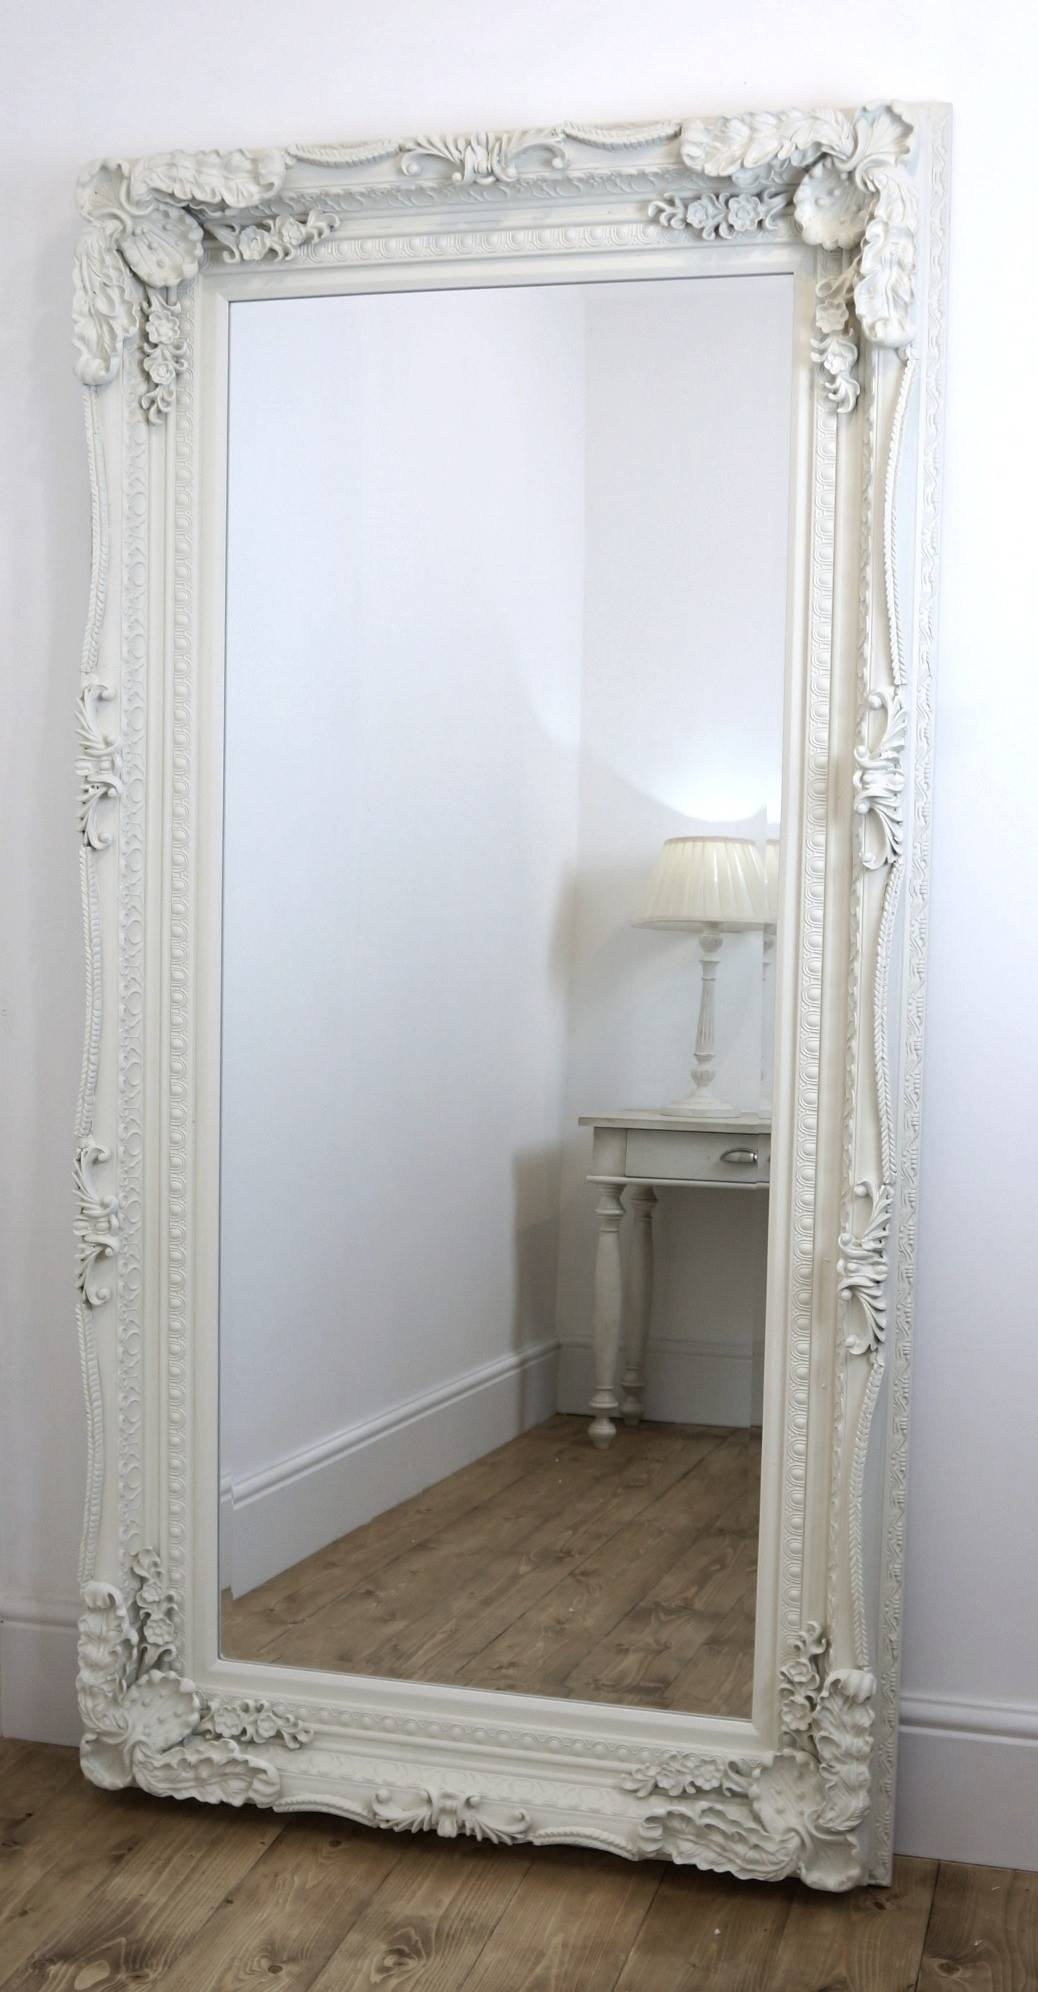 Furniture: Luxury Leaner Mirror For Home Accessories Ideas — Mtyp with regard to Big White Mirrors (Image 13 of 25)